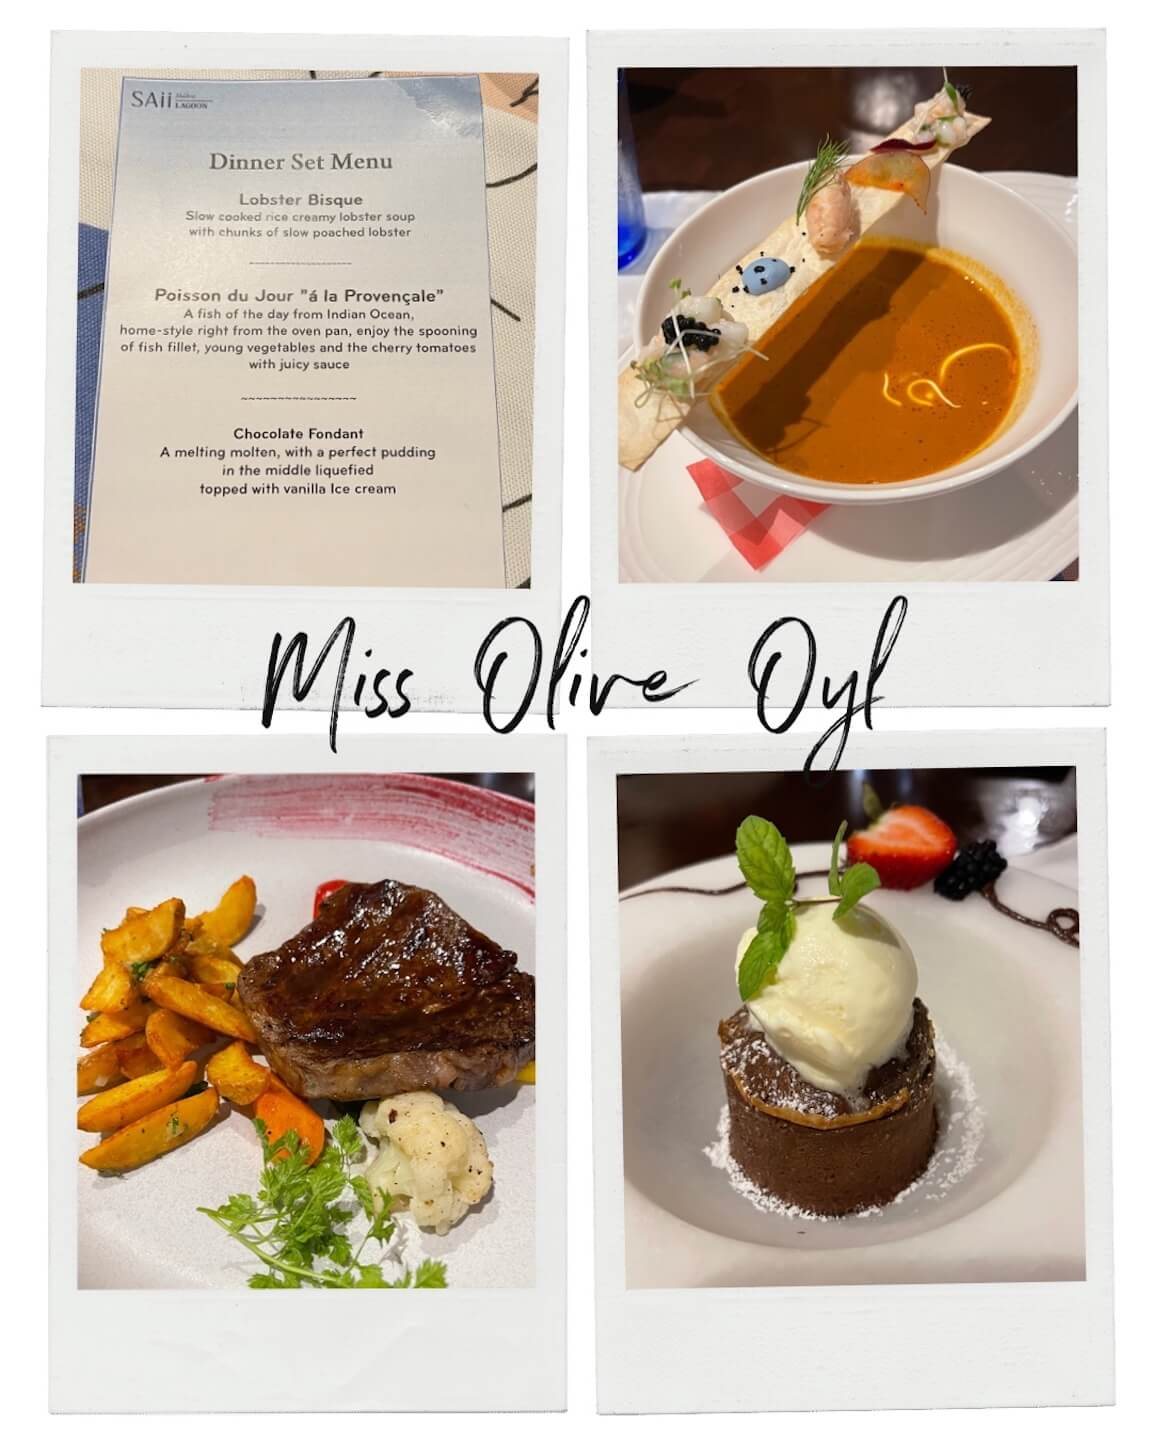 Compilation of different photos for dinner at the miss olive oil restaurant